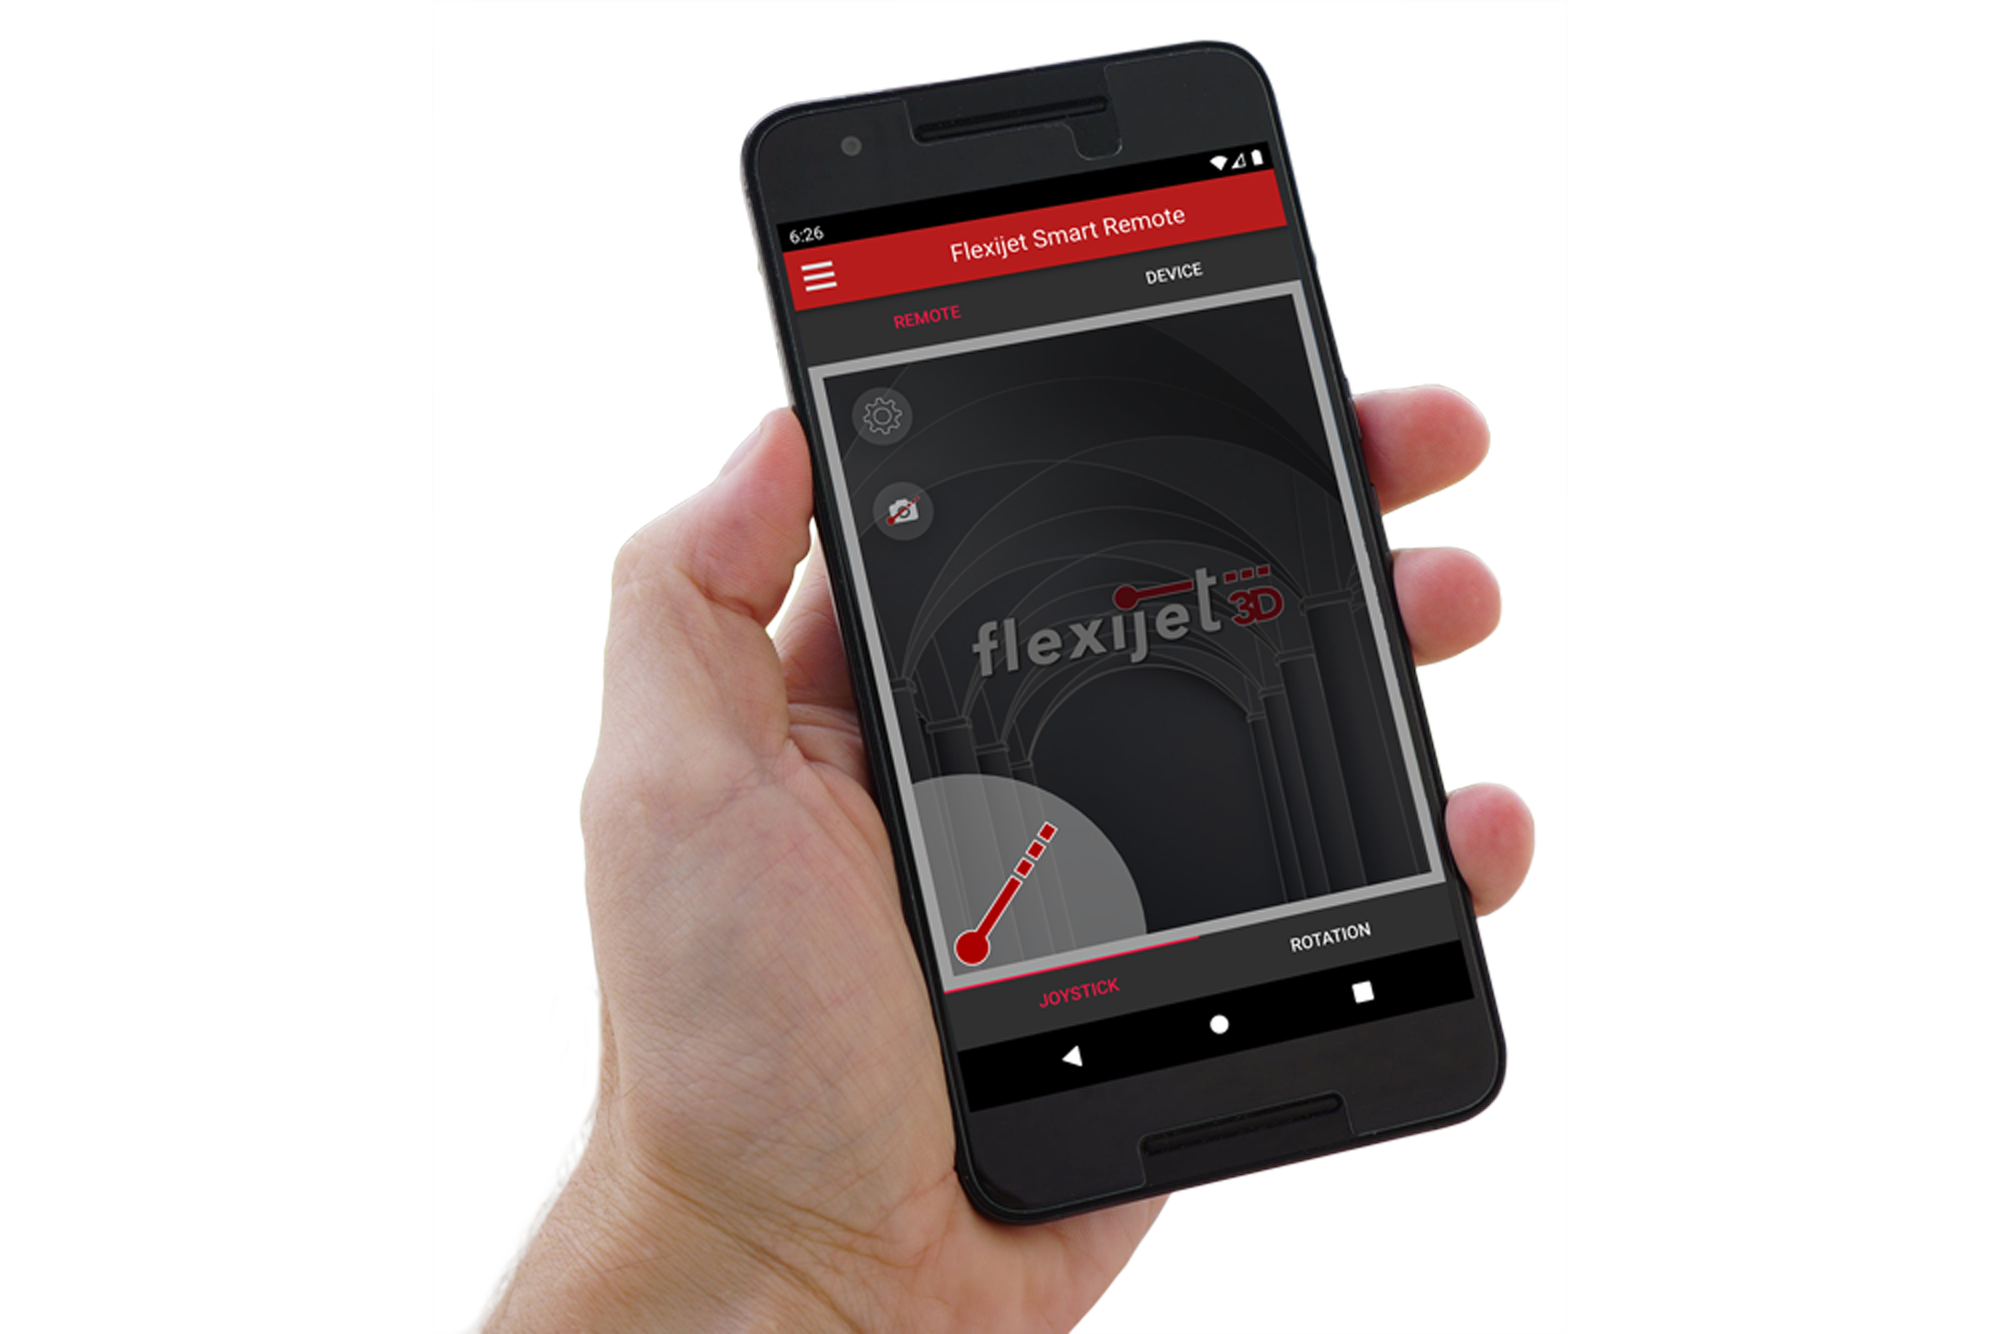 Image of user holding a smart phone with the Flexijet Smart Remote App interface.